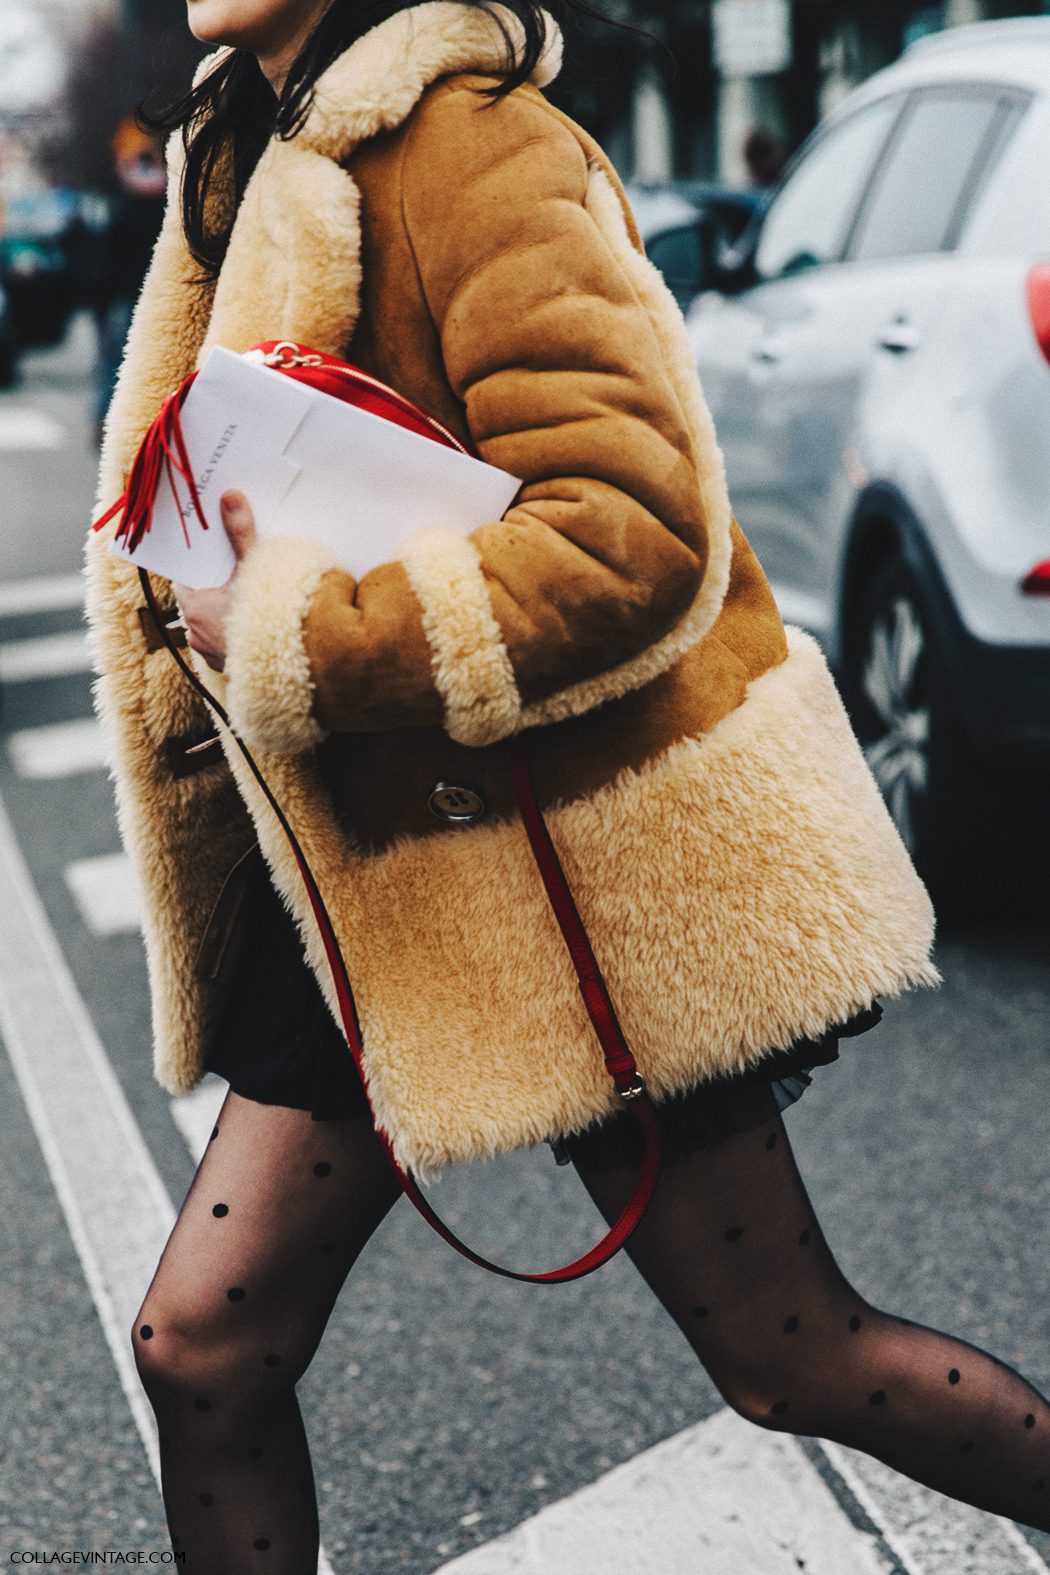 Milan_Fashion_Week_Fall_16-MFW-Street_Style-Collage_Vintage-Coach-Shearling_Coat